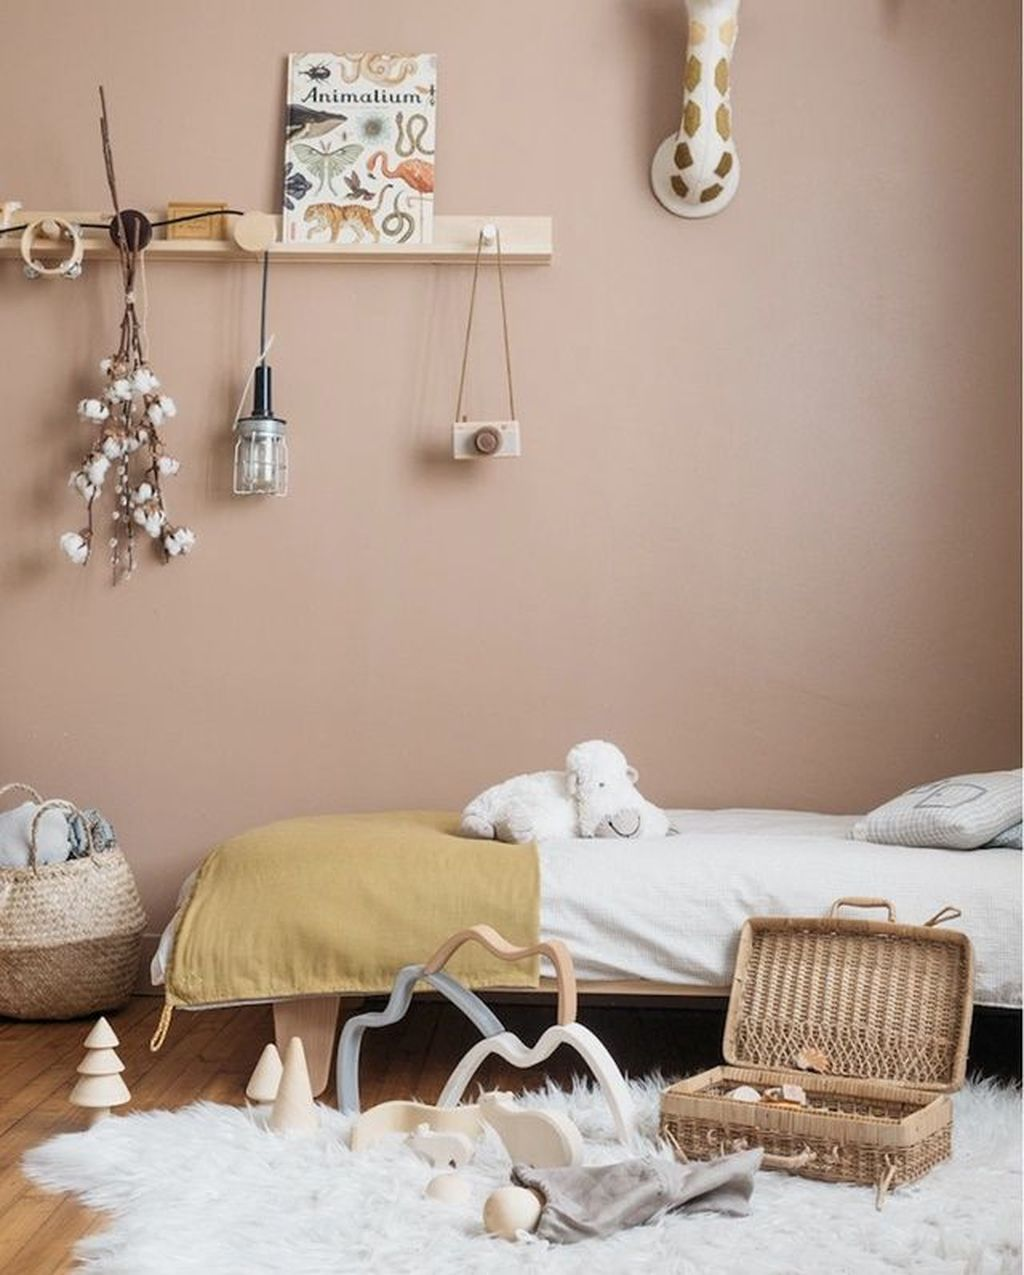 20 Modern Colorful Bedroom Decor Ideas For Kids Minimalist Kids Room Colorful Bedroom Decor Scandinavian Kids Rooms